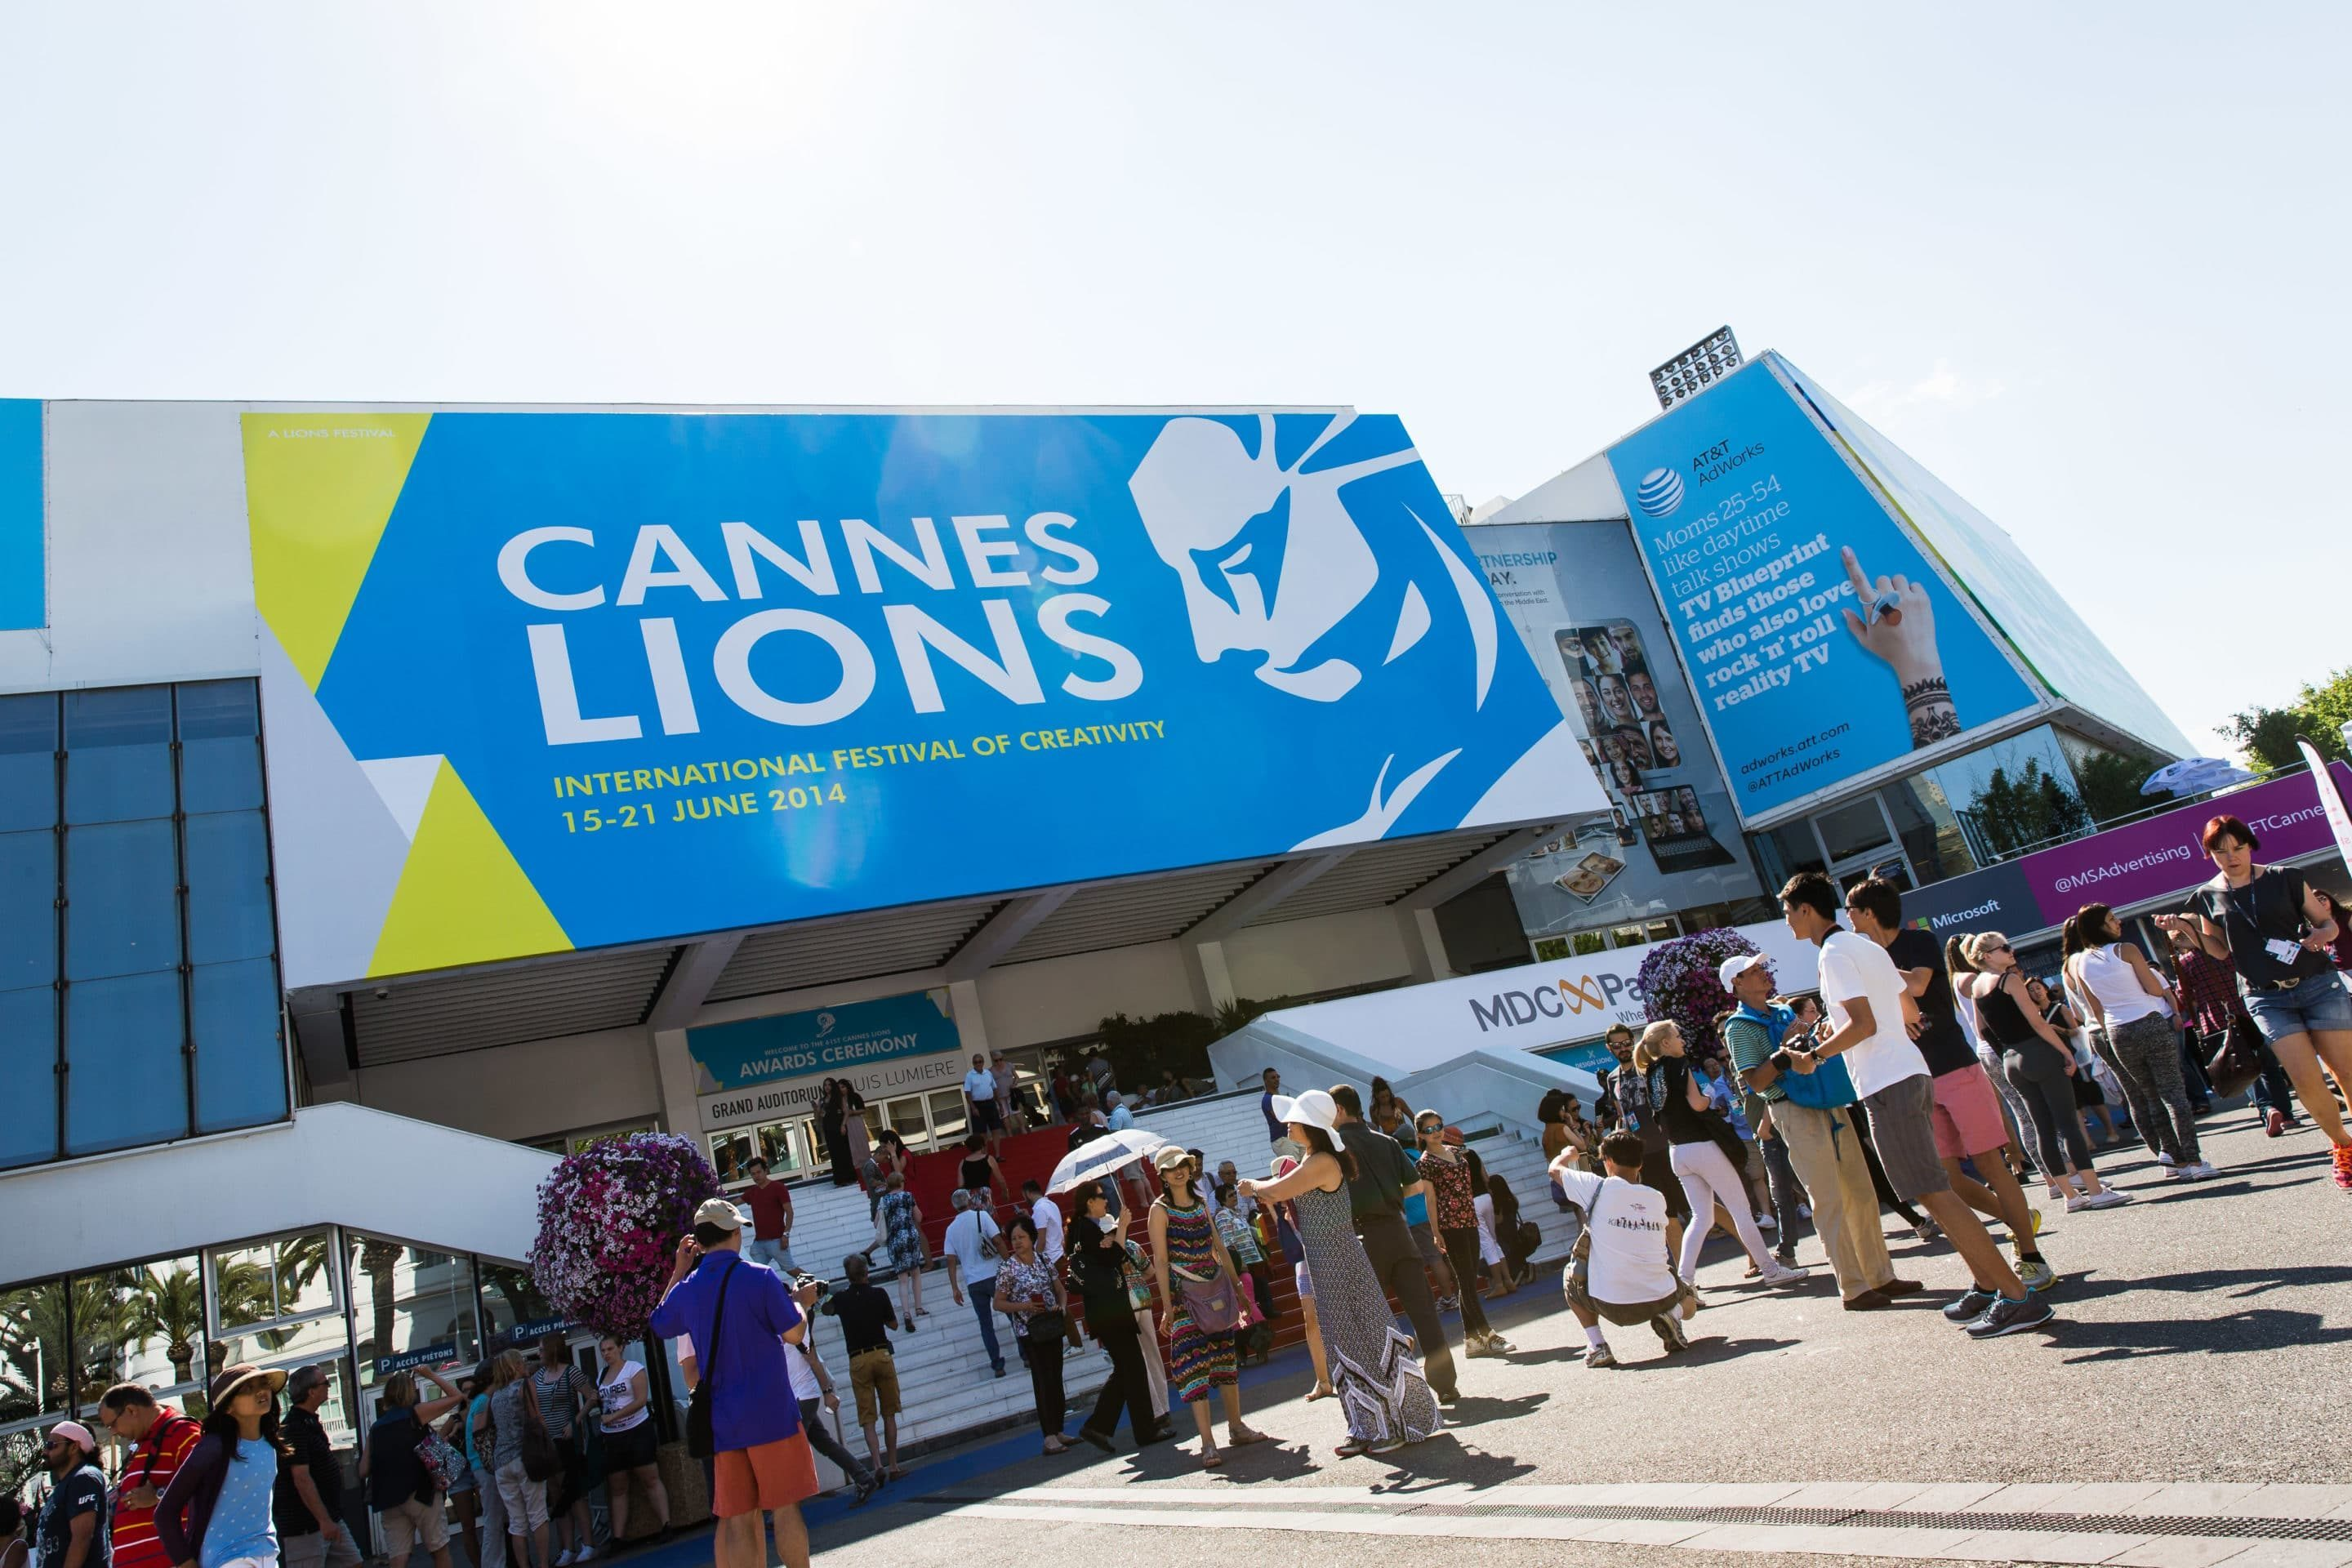 cannes-lions-yacht-events-corporate-congres